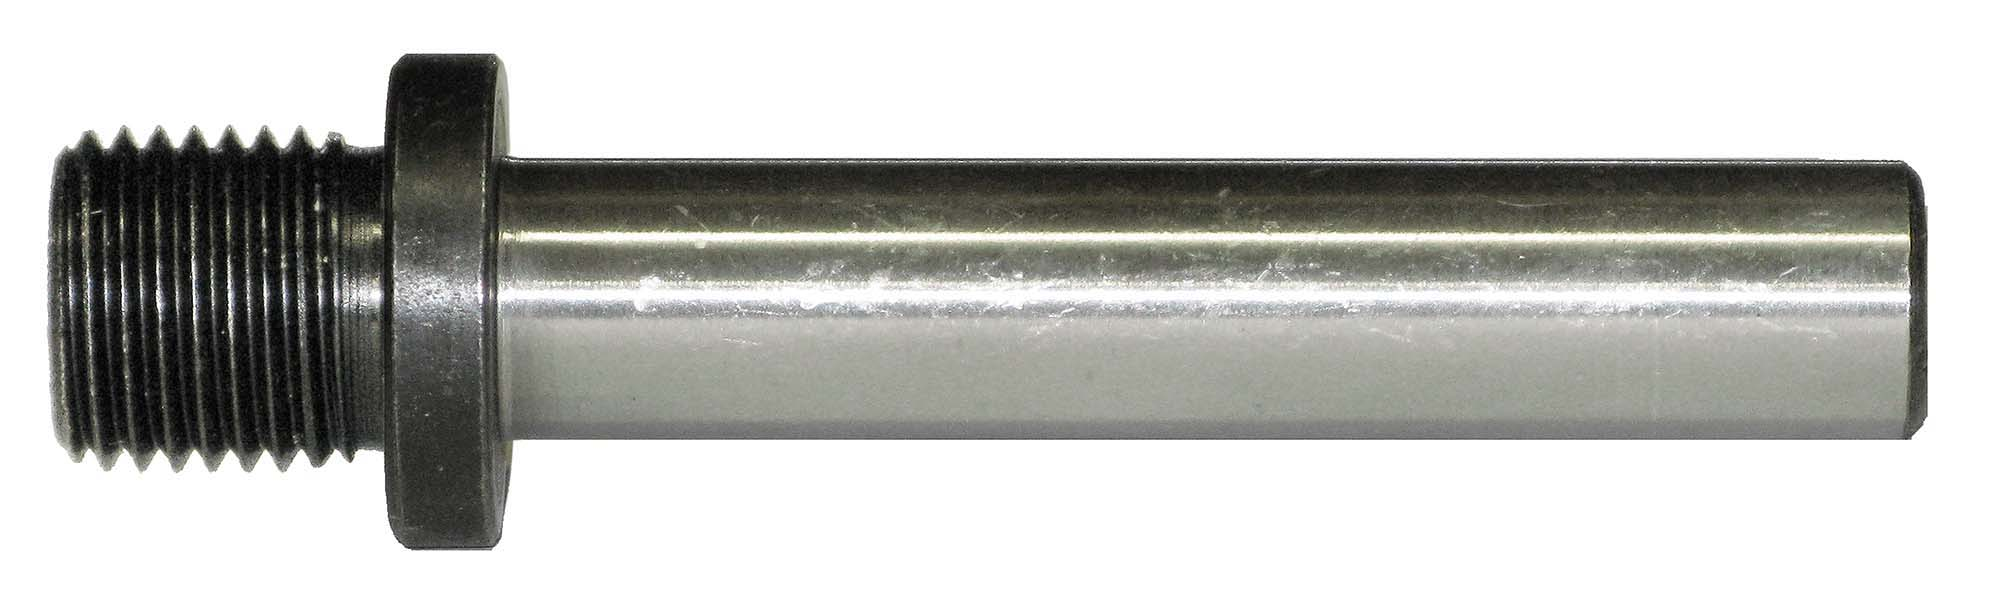 "1/2"" Straight Shank to 5/8""-16 Threaded Drill Chuck Arbor"